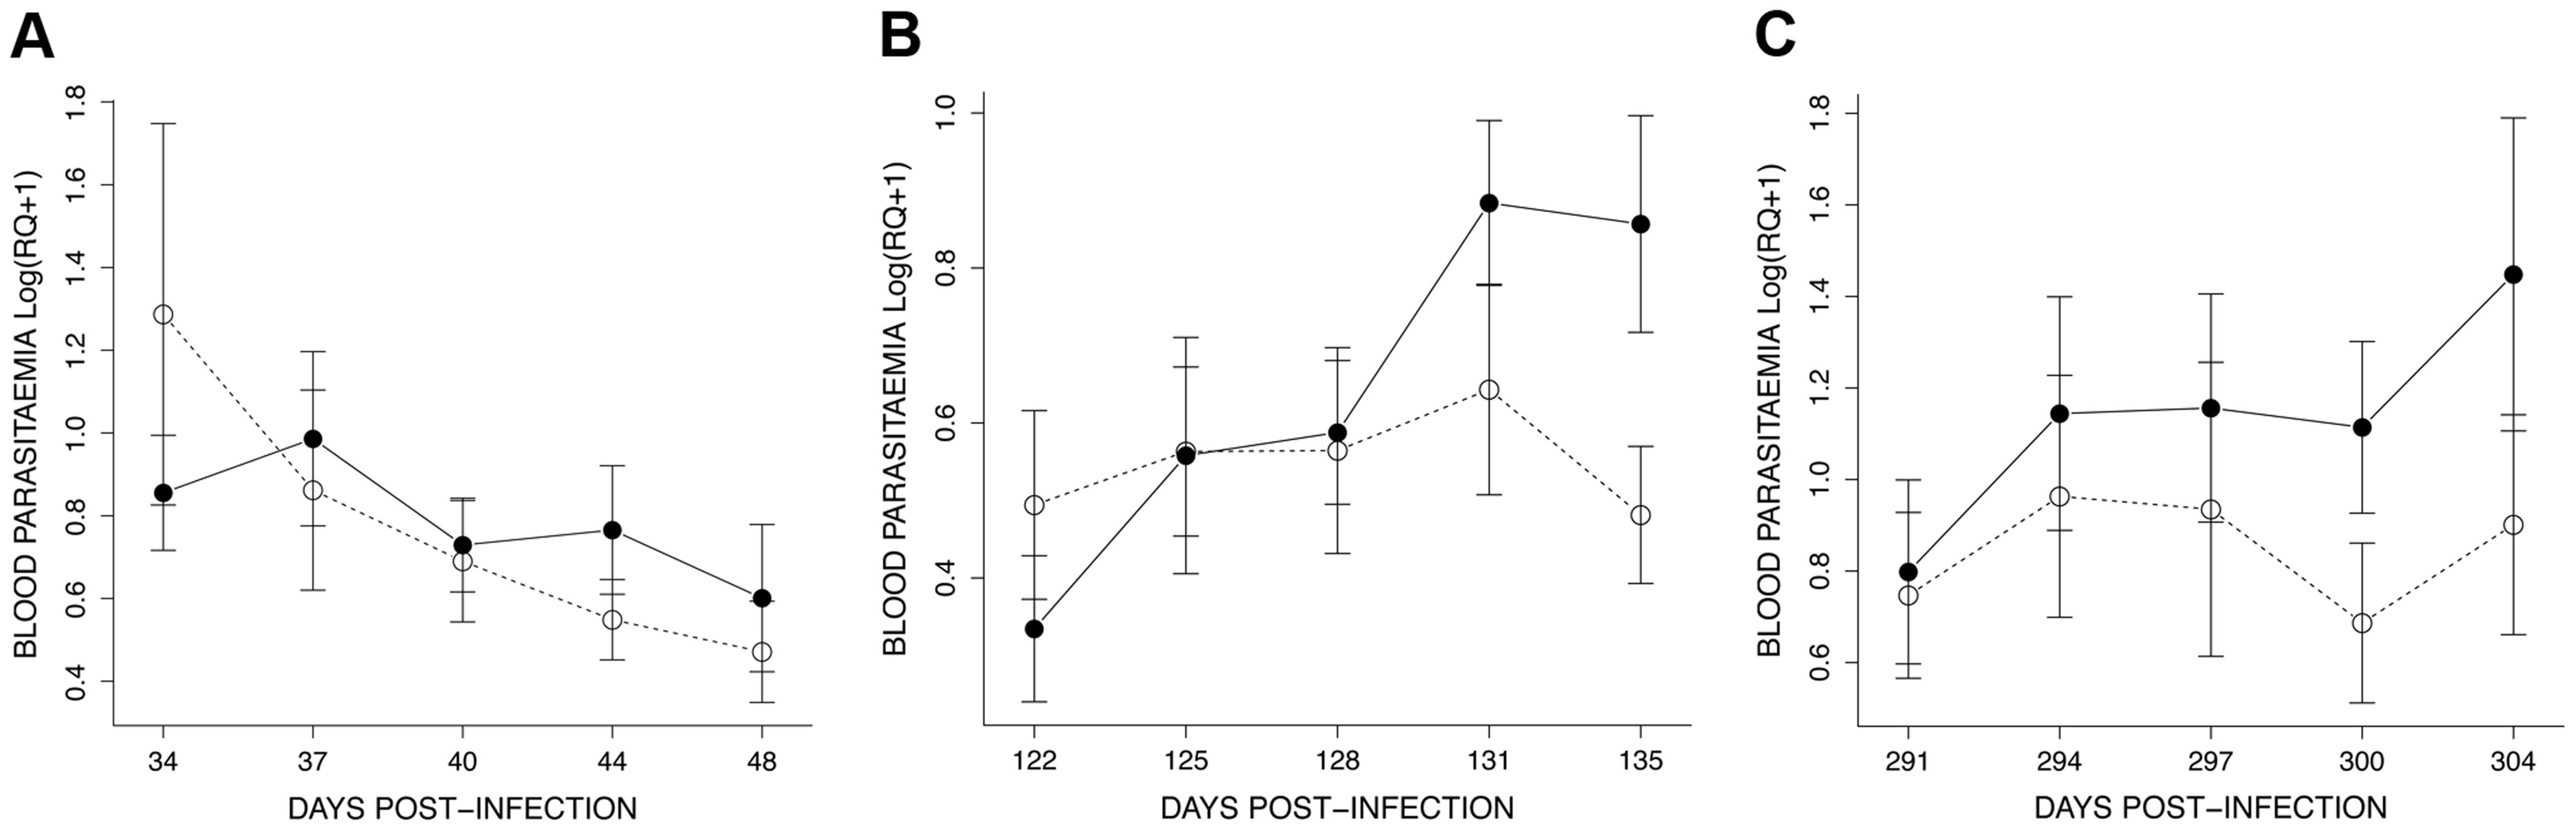 Details of the dynamics of blood parasitaemia (Log(RQ+1), mean ± s.e.) for the 3 exposure sessions (see <em class=&quot;ref&quot;>Fig. 4</em>): (A) session 1 (34–48 dpi), (B) session 2 (122–135 dpi) and (C) session 3 (291–304 dpi).